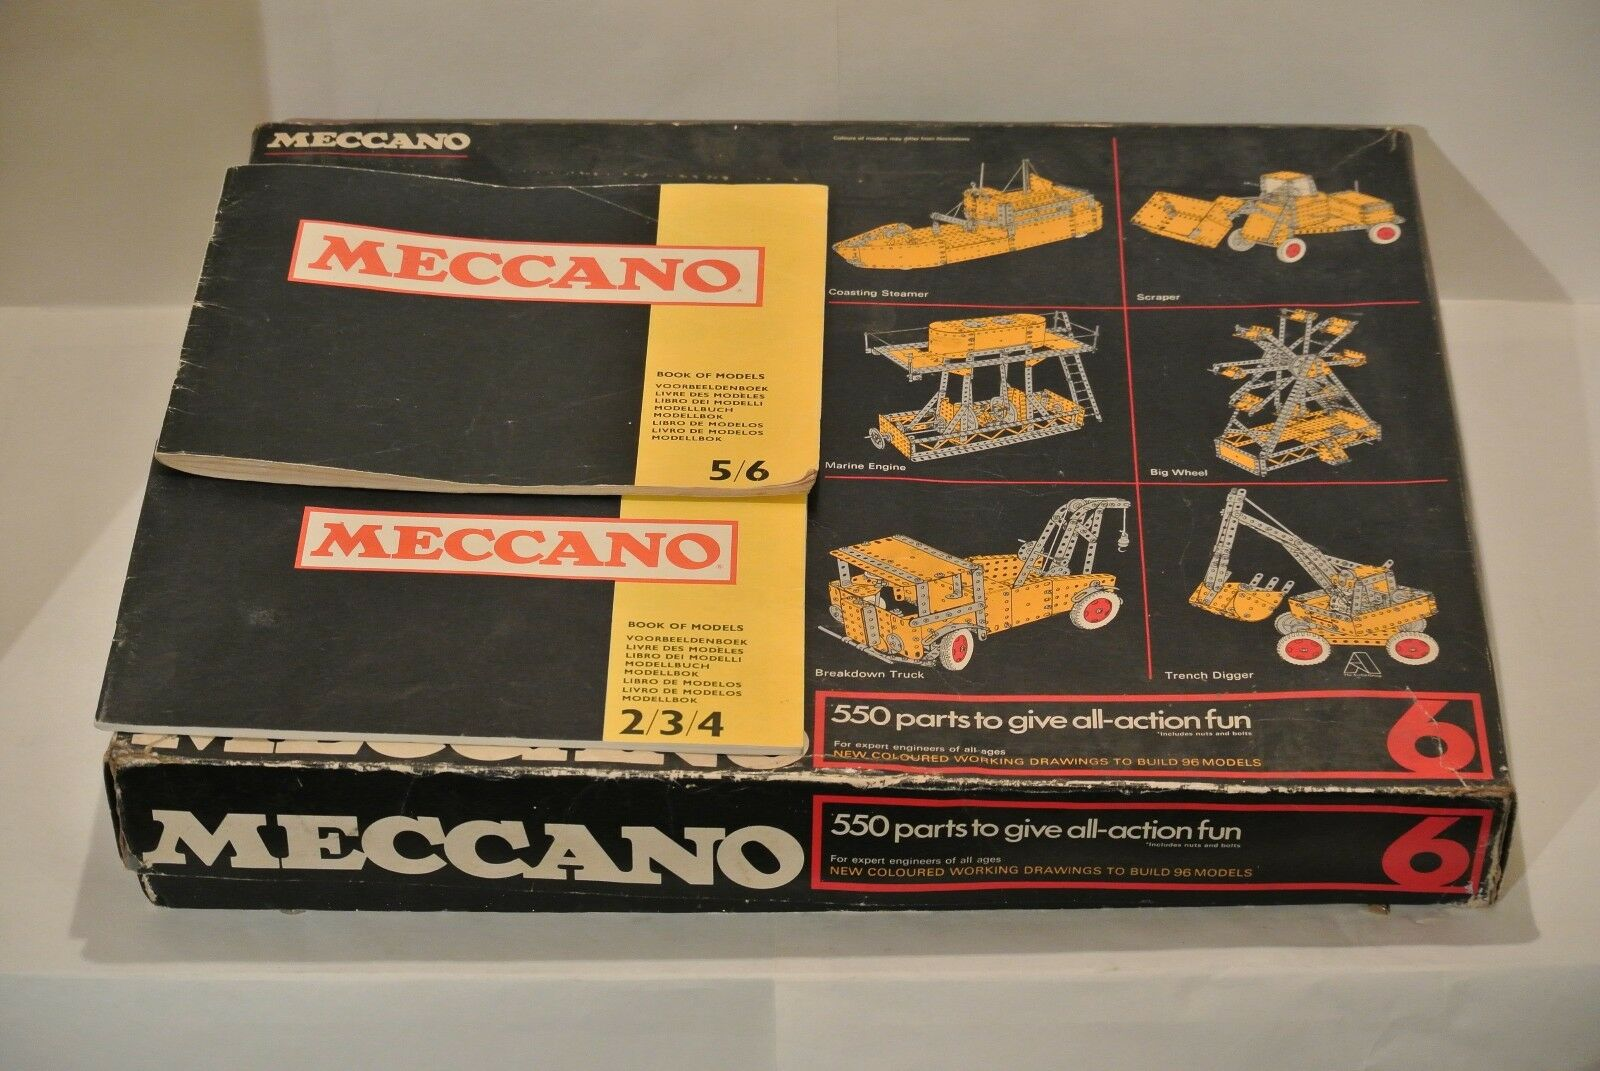 Meccano Set 6 1970's COMPLETE Great Cond, bluee Yellow, Manual 2-4,5-6  Parts 550